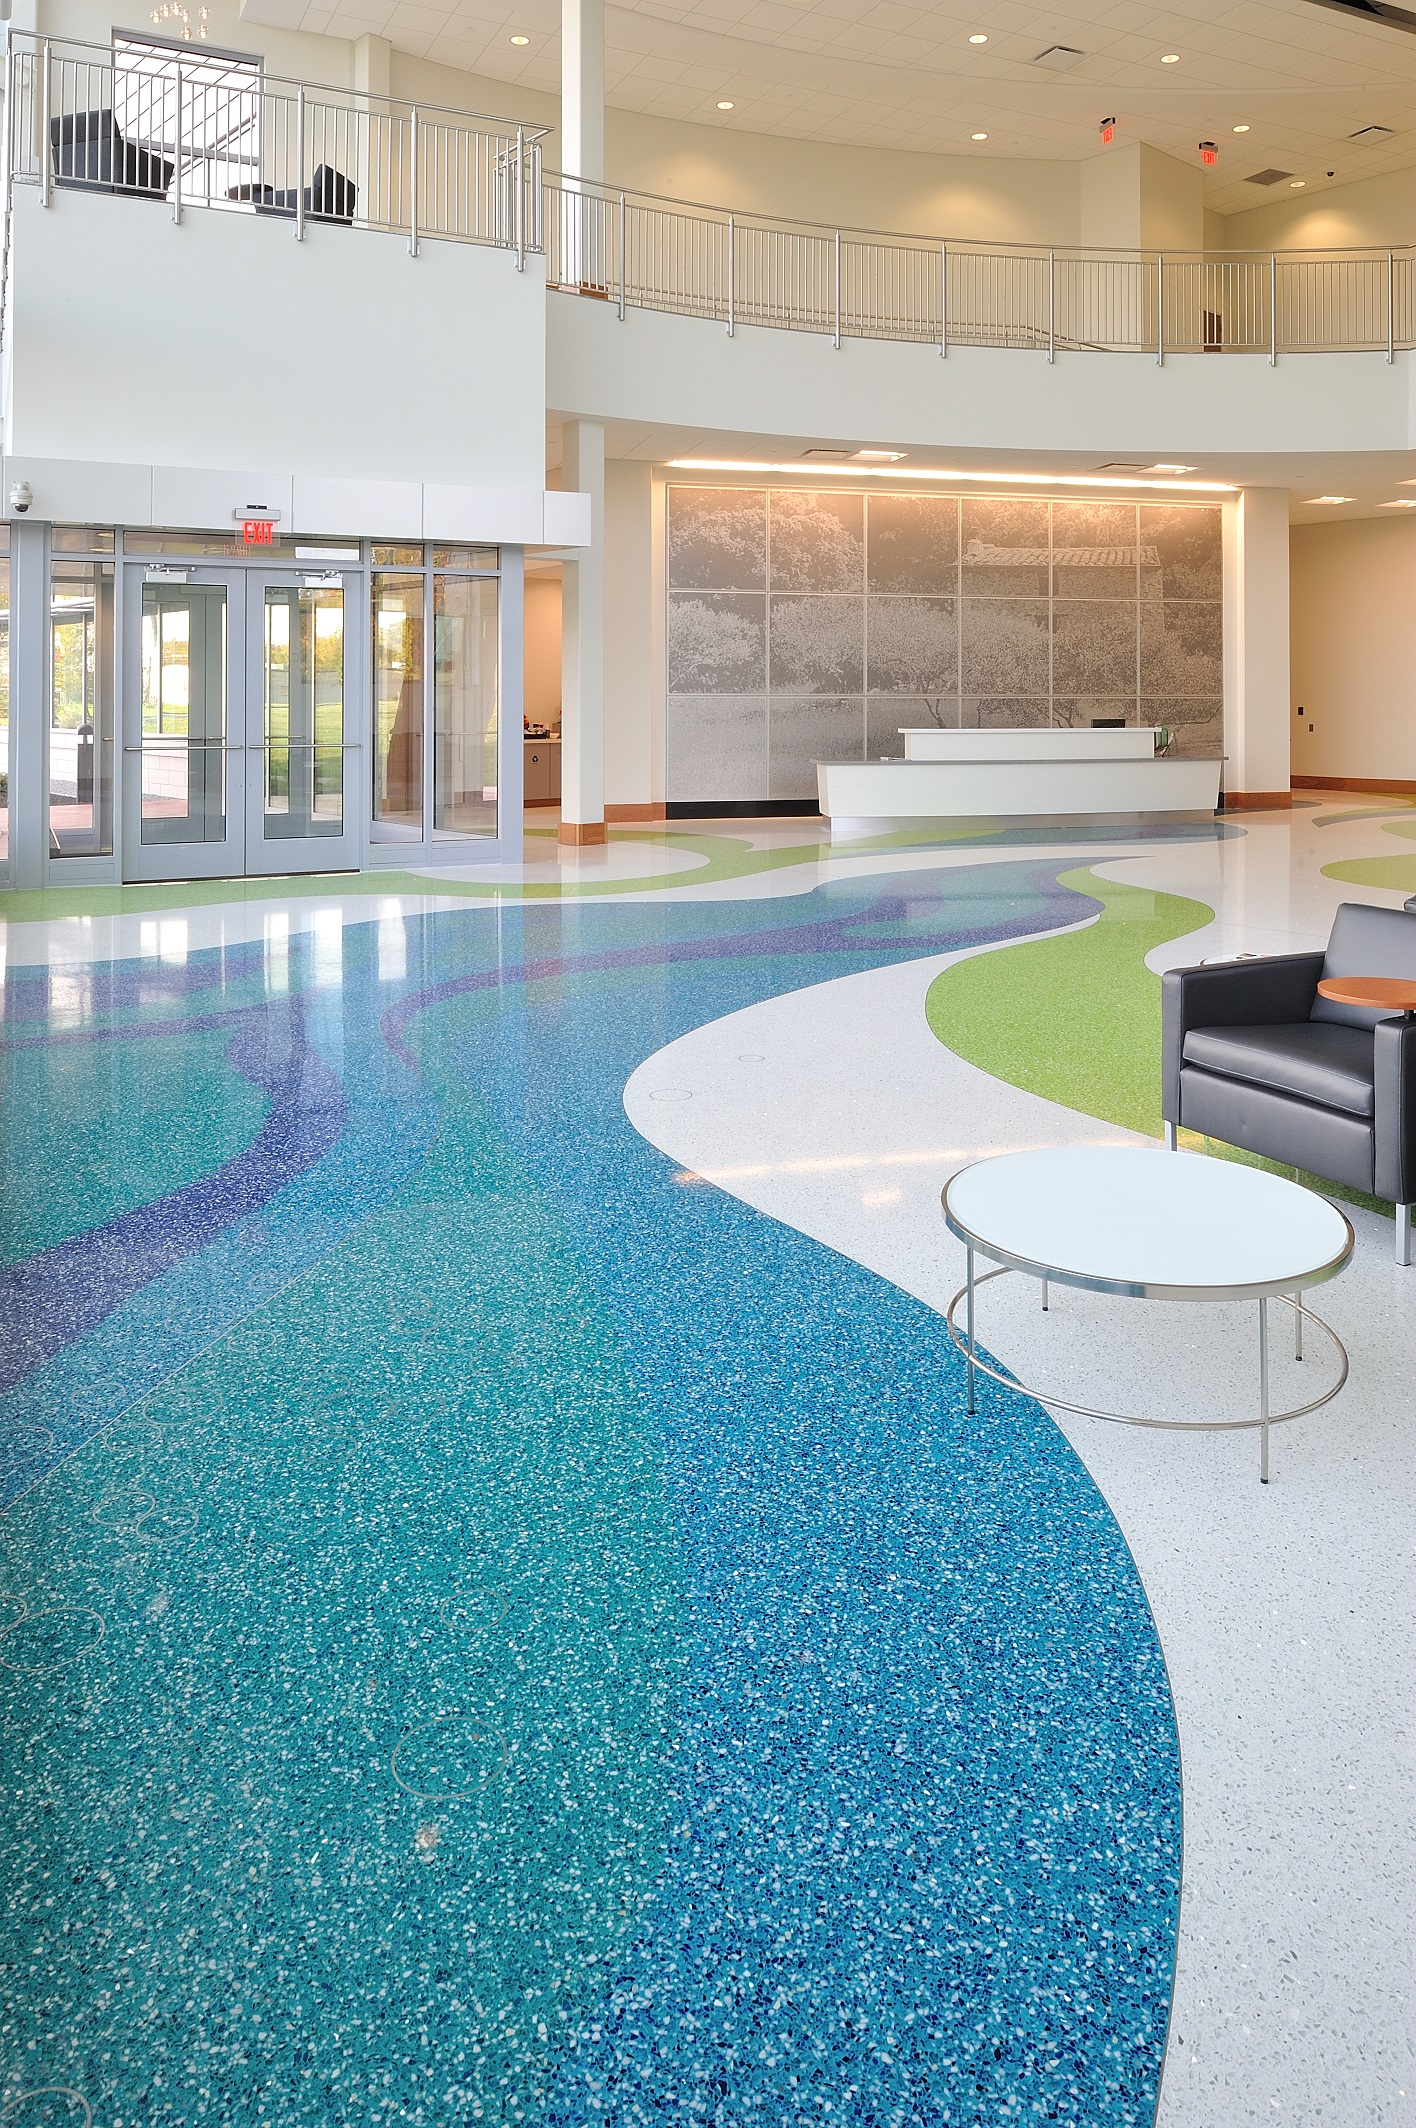 Terrazzo Plan Your Business From The Ground Up Terrazzo